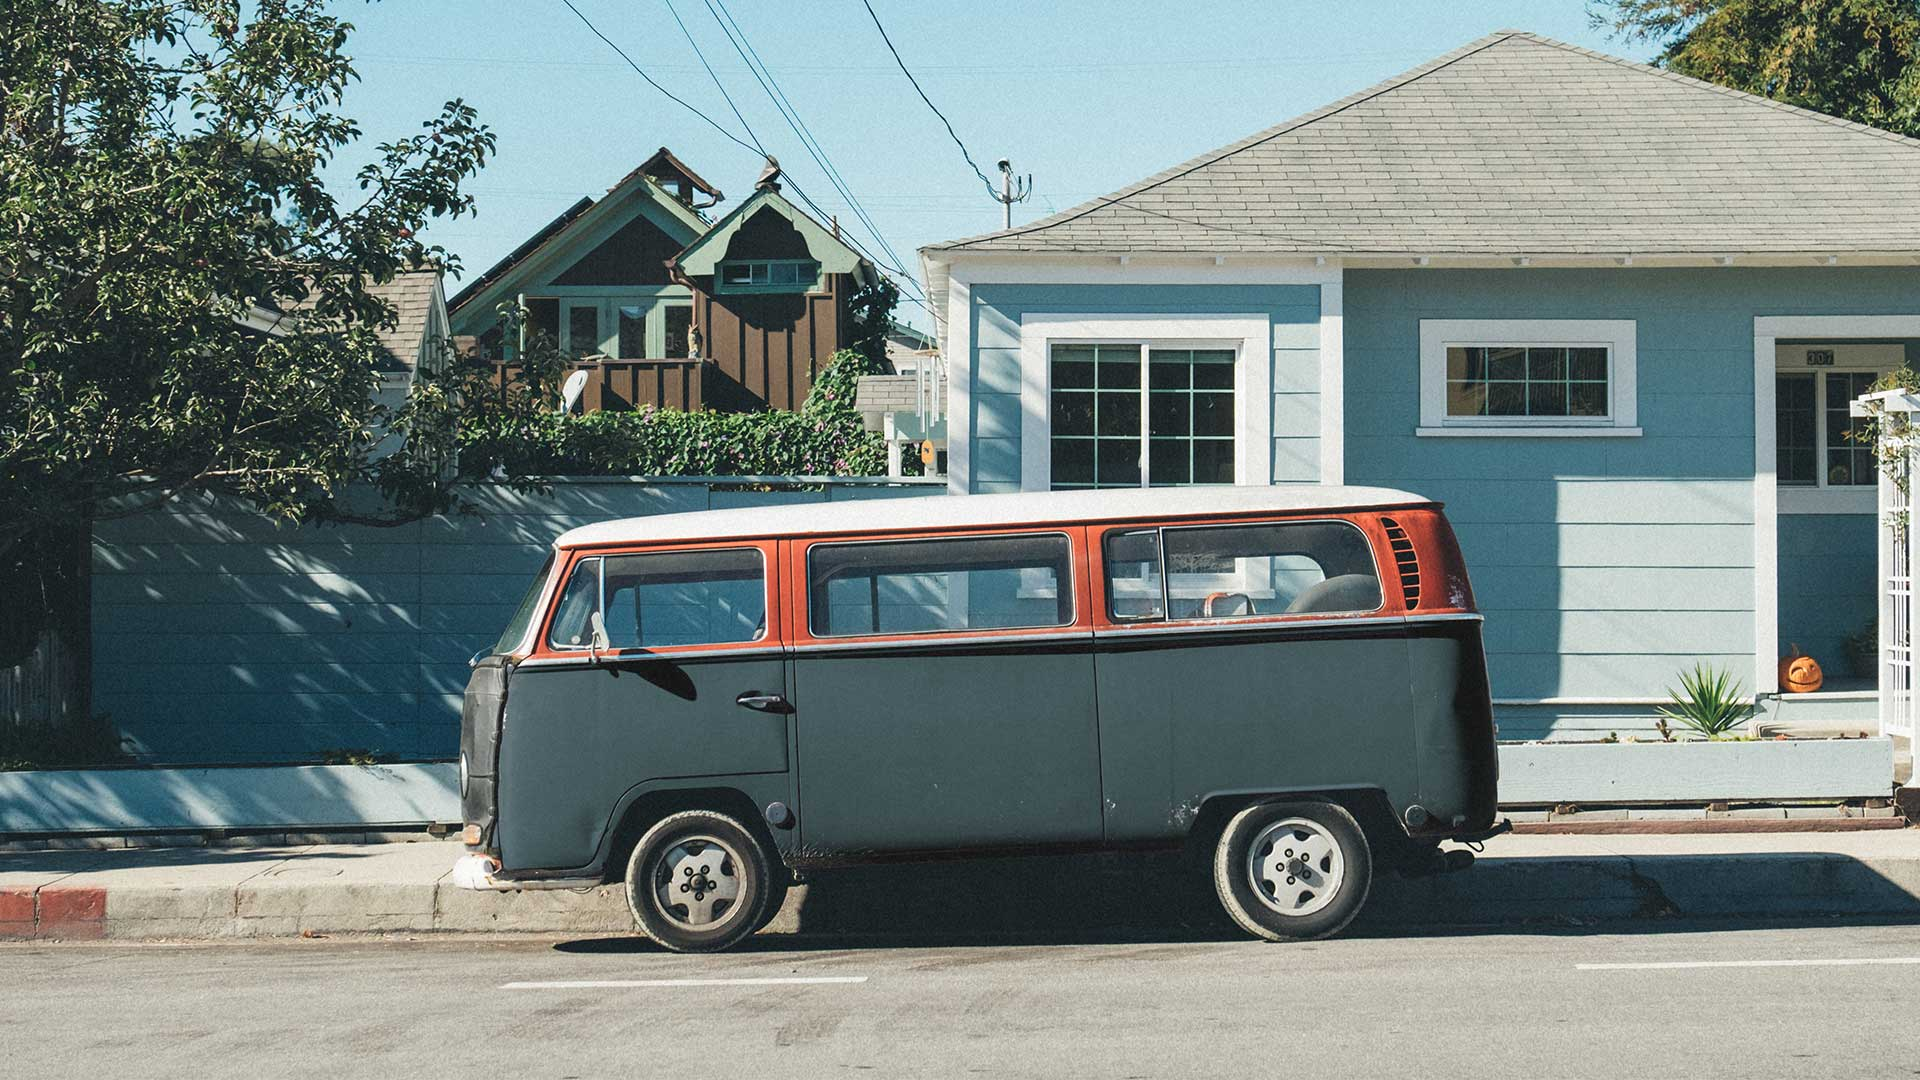 VW campervan black and orange colorized with Imerge Pro color adjustment effect